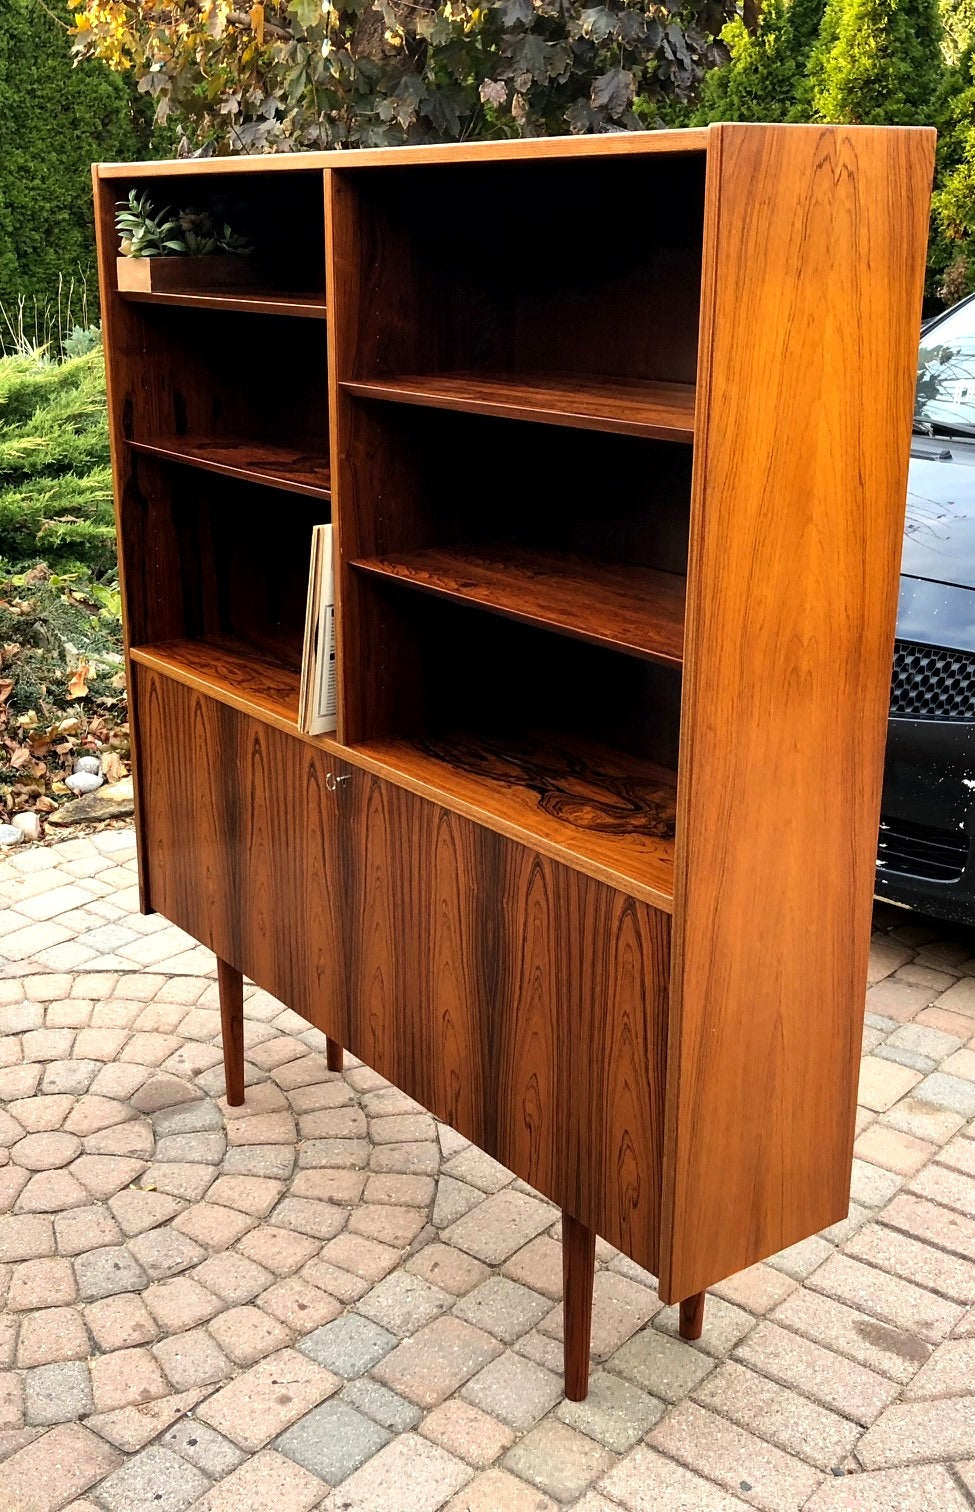 Restored Danish Modern Rosewood Bookcase Display Bar by Poul Hundevad, 54